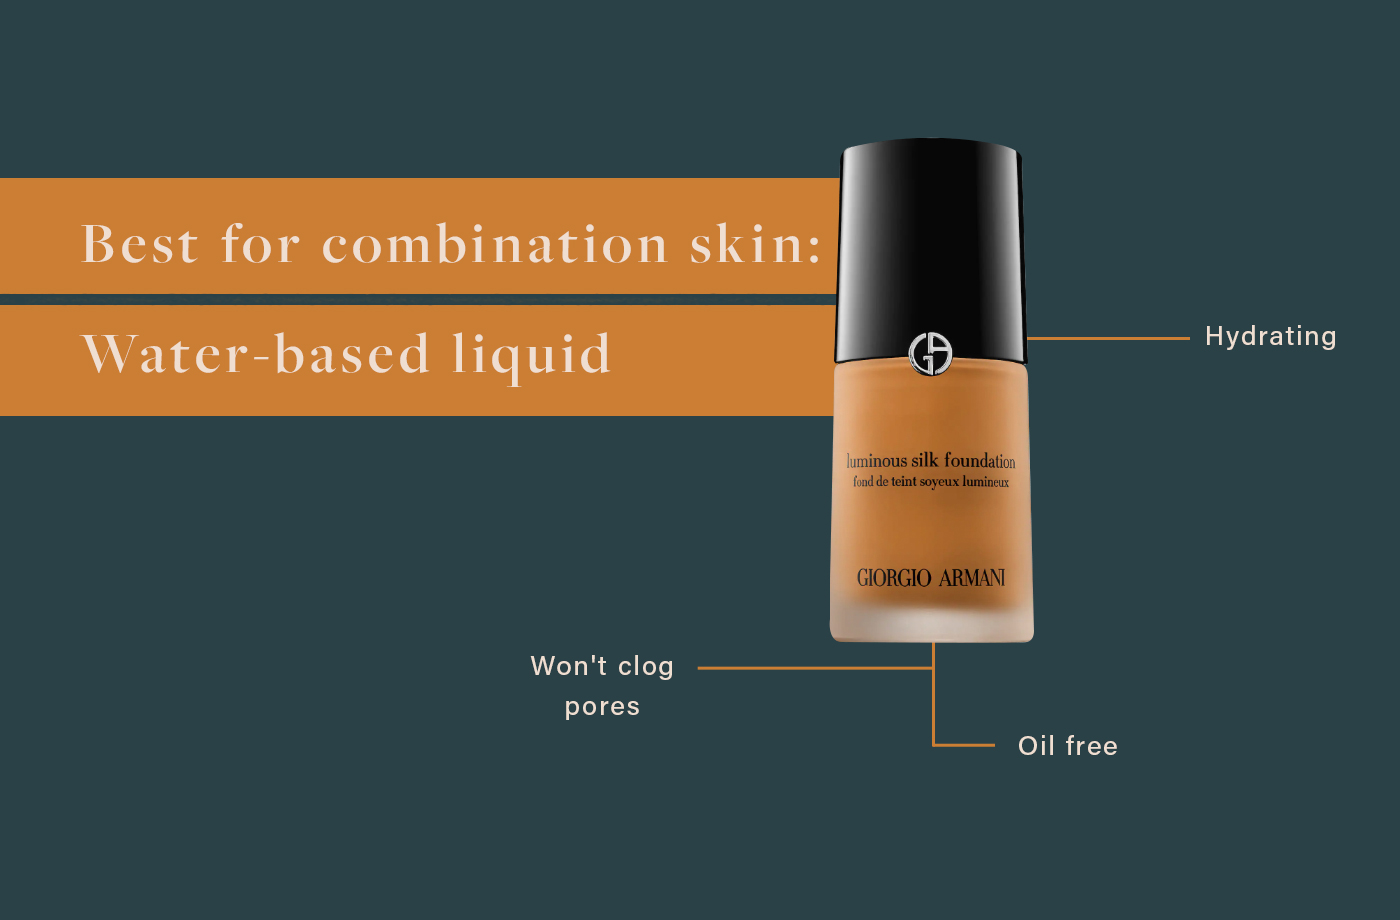 The Best Foundation For Skin Based On Ingredients Well Good